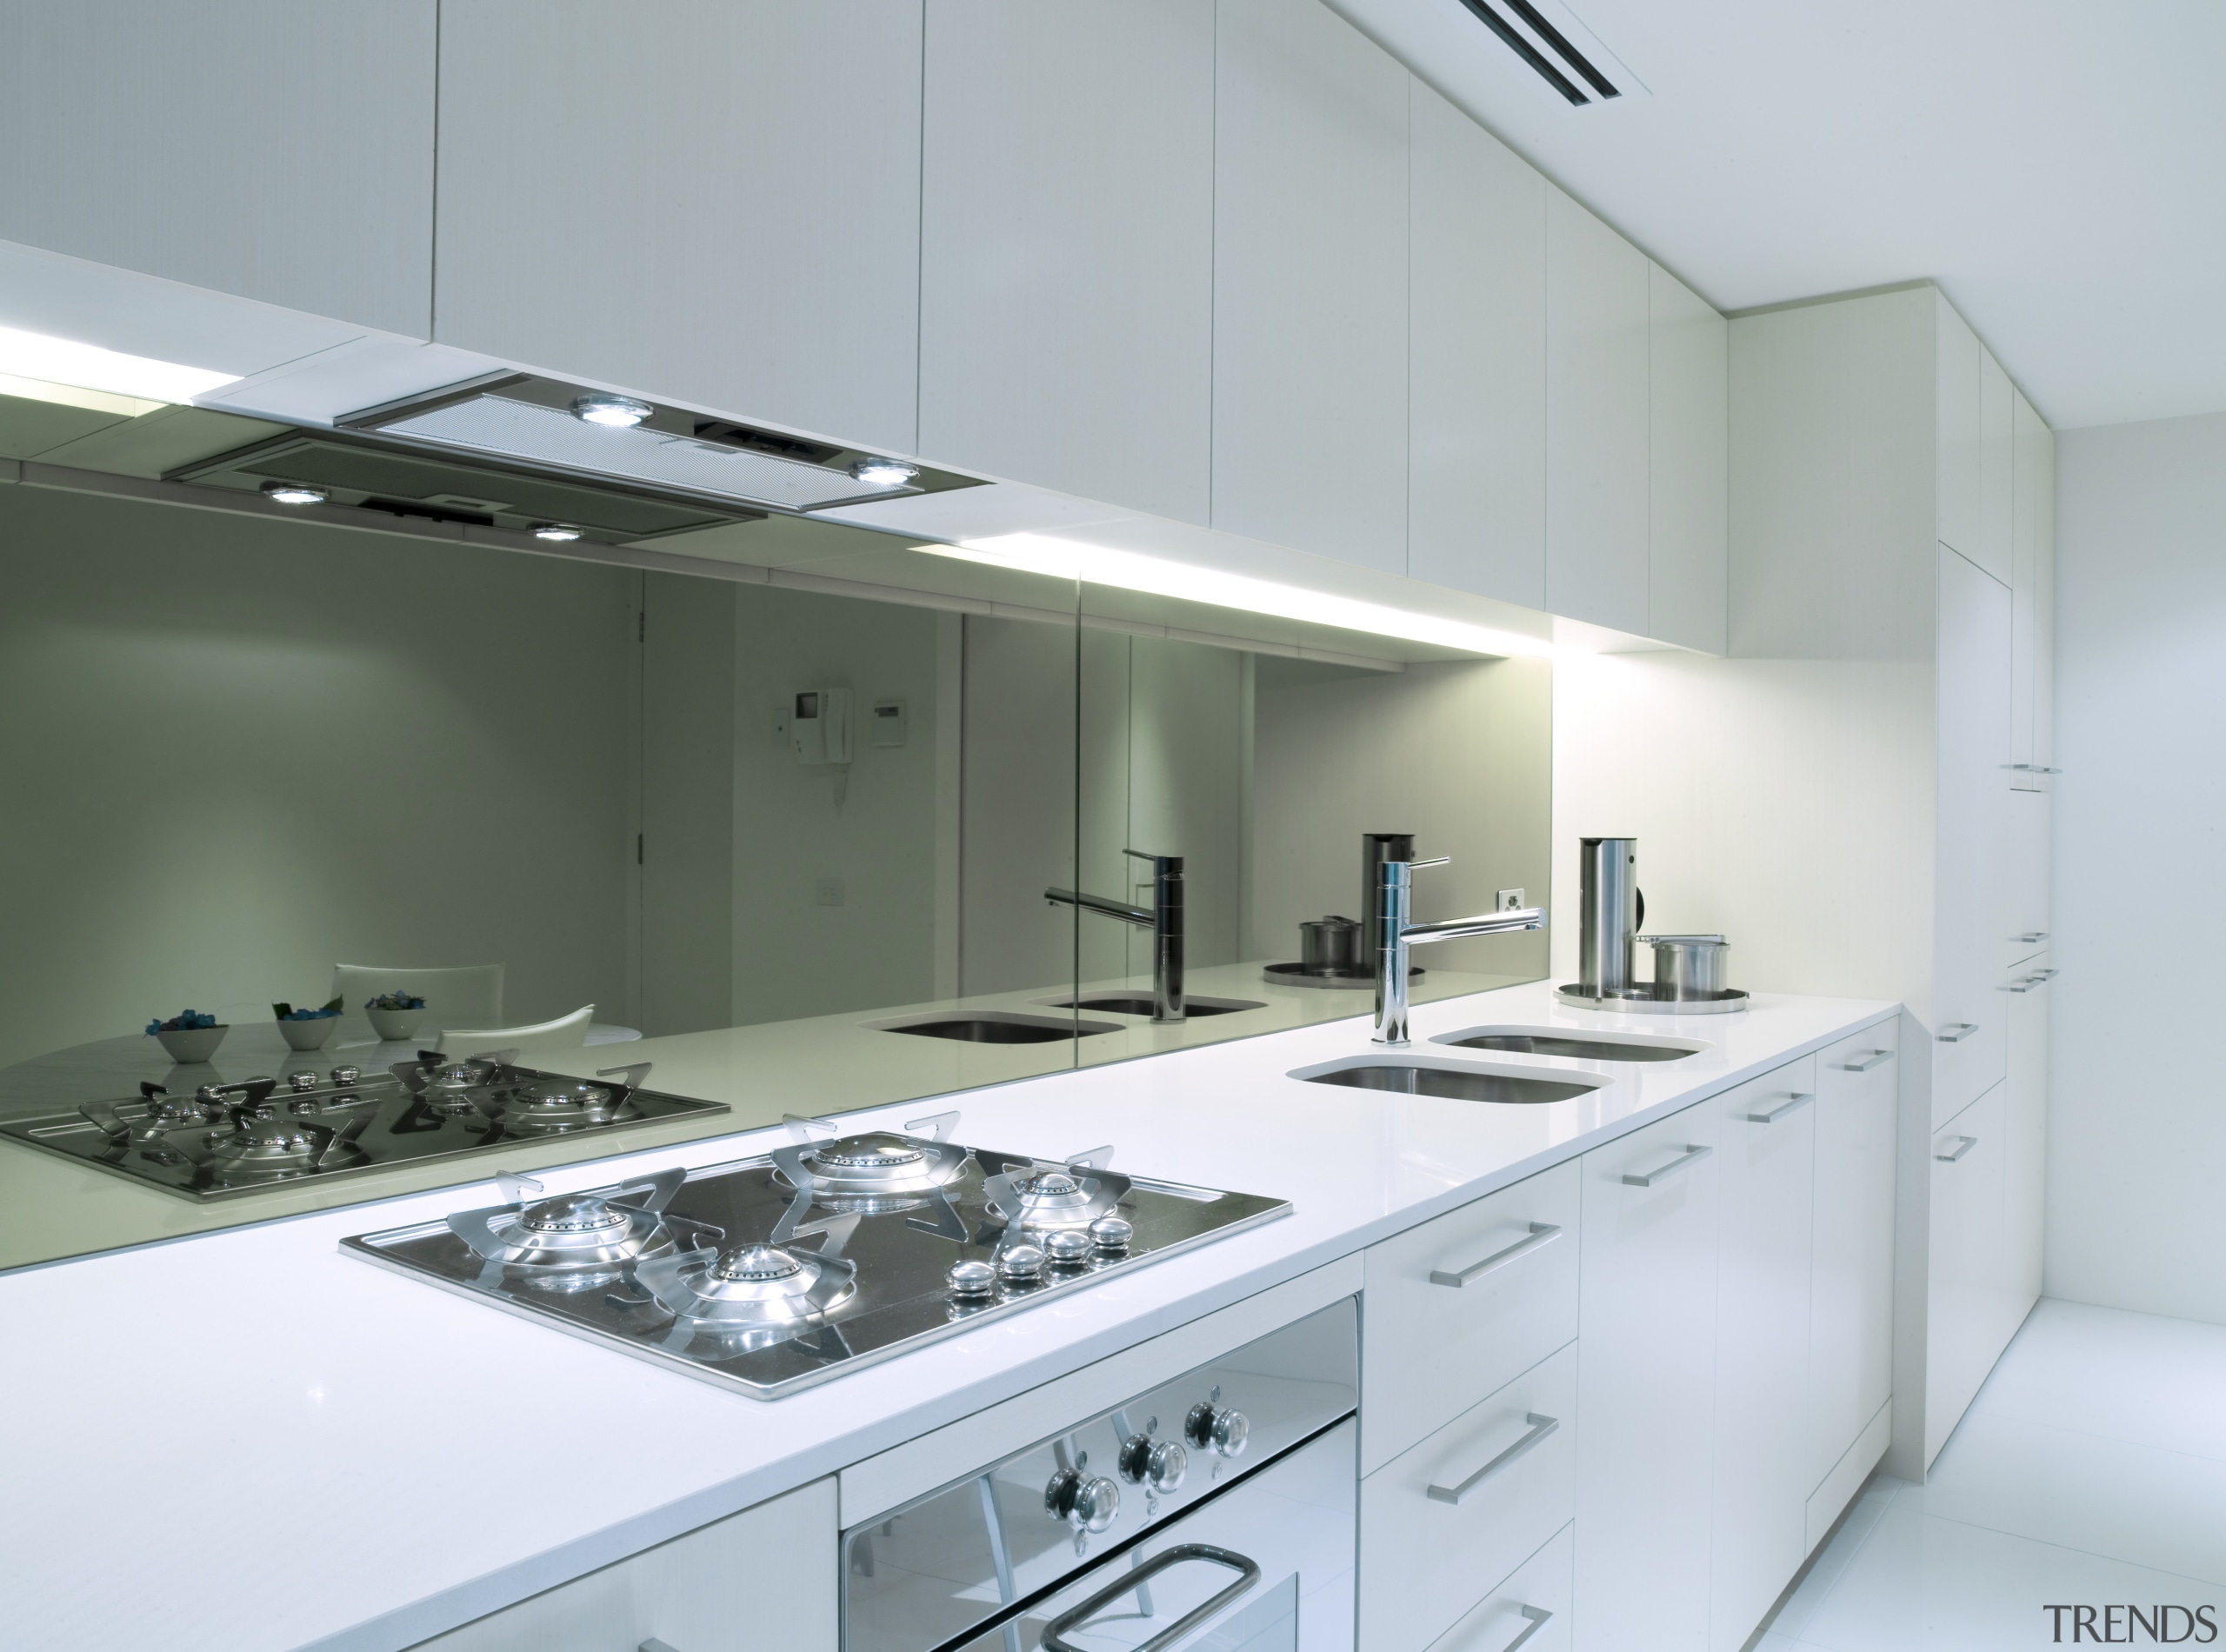 A view of a kitchen with some Omega architecture, countertop, glass, interior design, kitchen, product design, gray